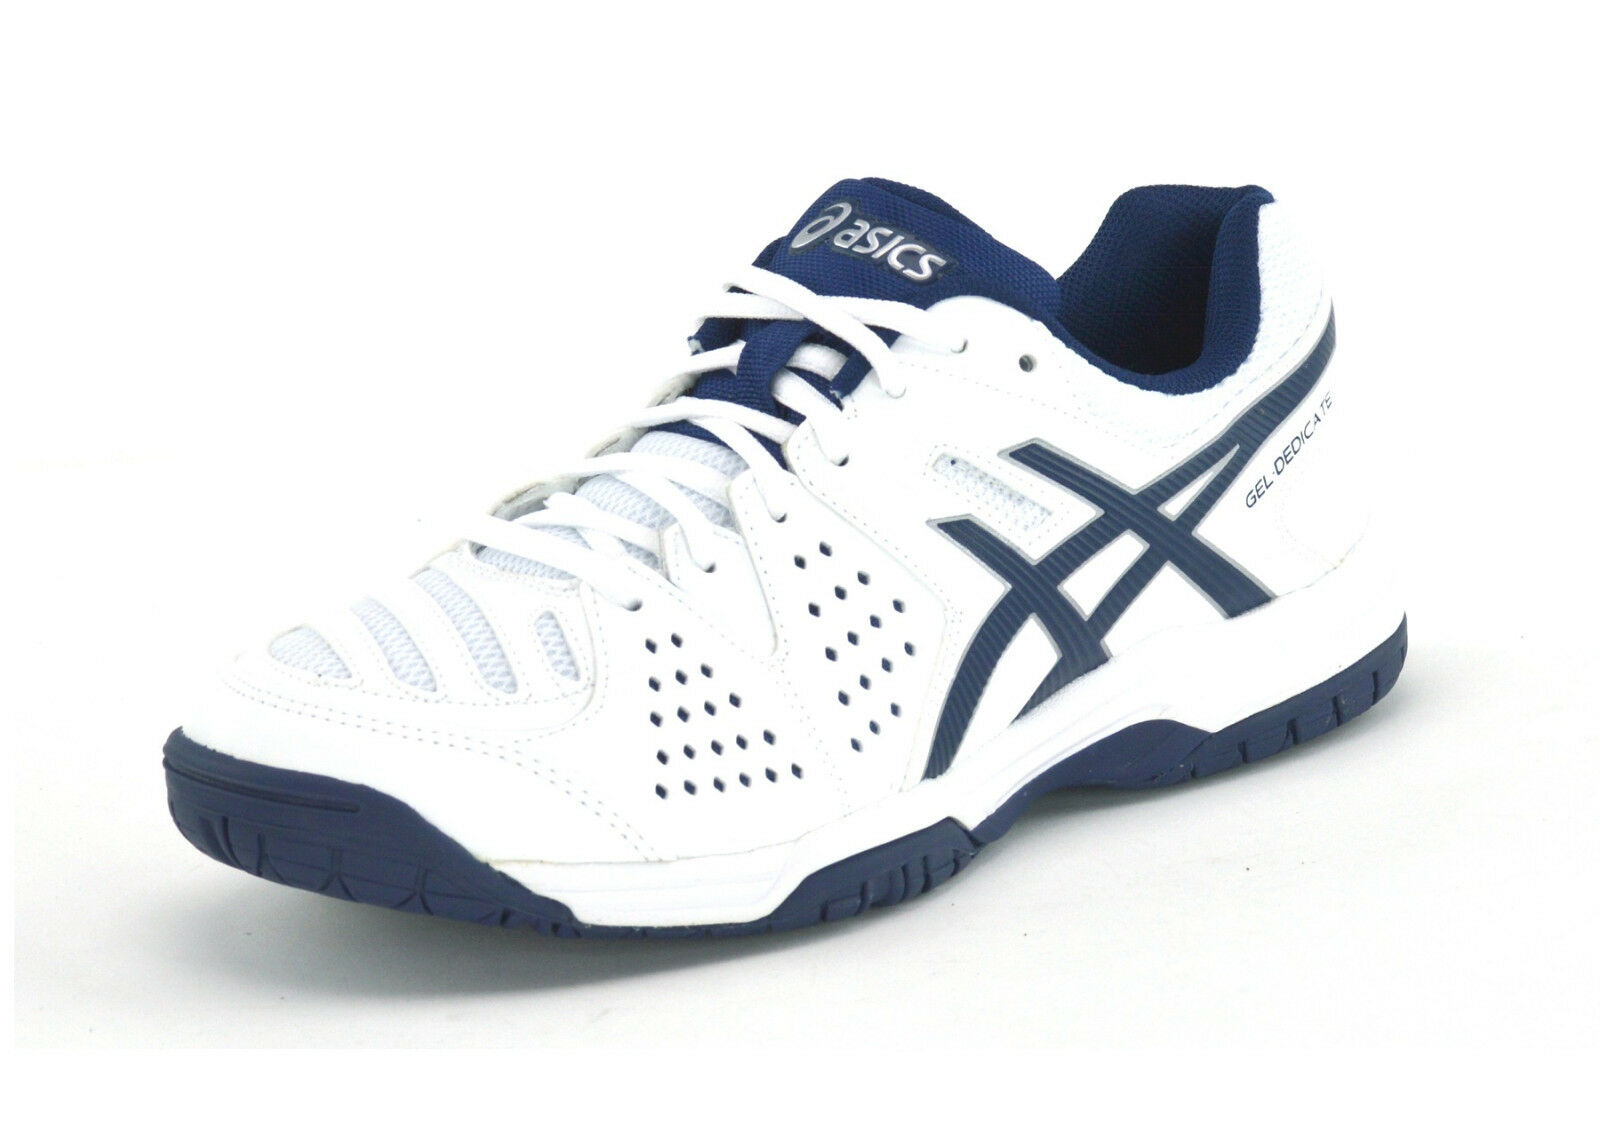 ASICS GEL DEDICATE 4 - E507Y 0150 - MENS TRAINERS - WHITE NAVY - BRAND NEW